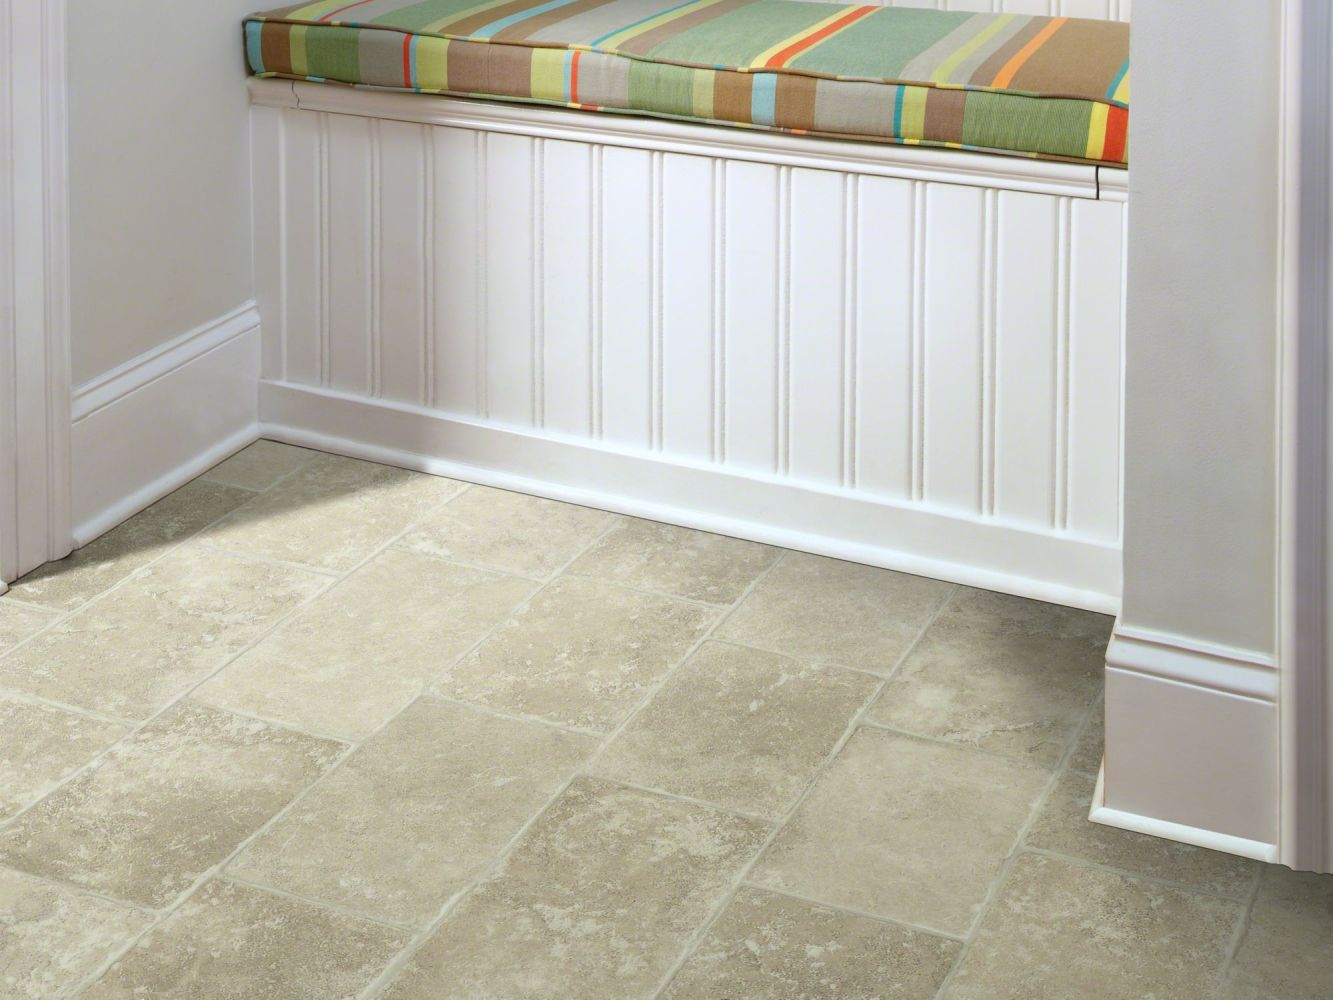 Shaw Floors Vinyl Residential City Limits Partition 00175_0613V